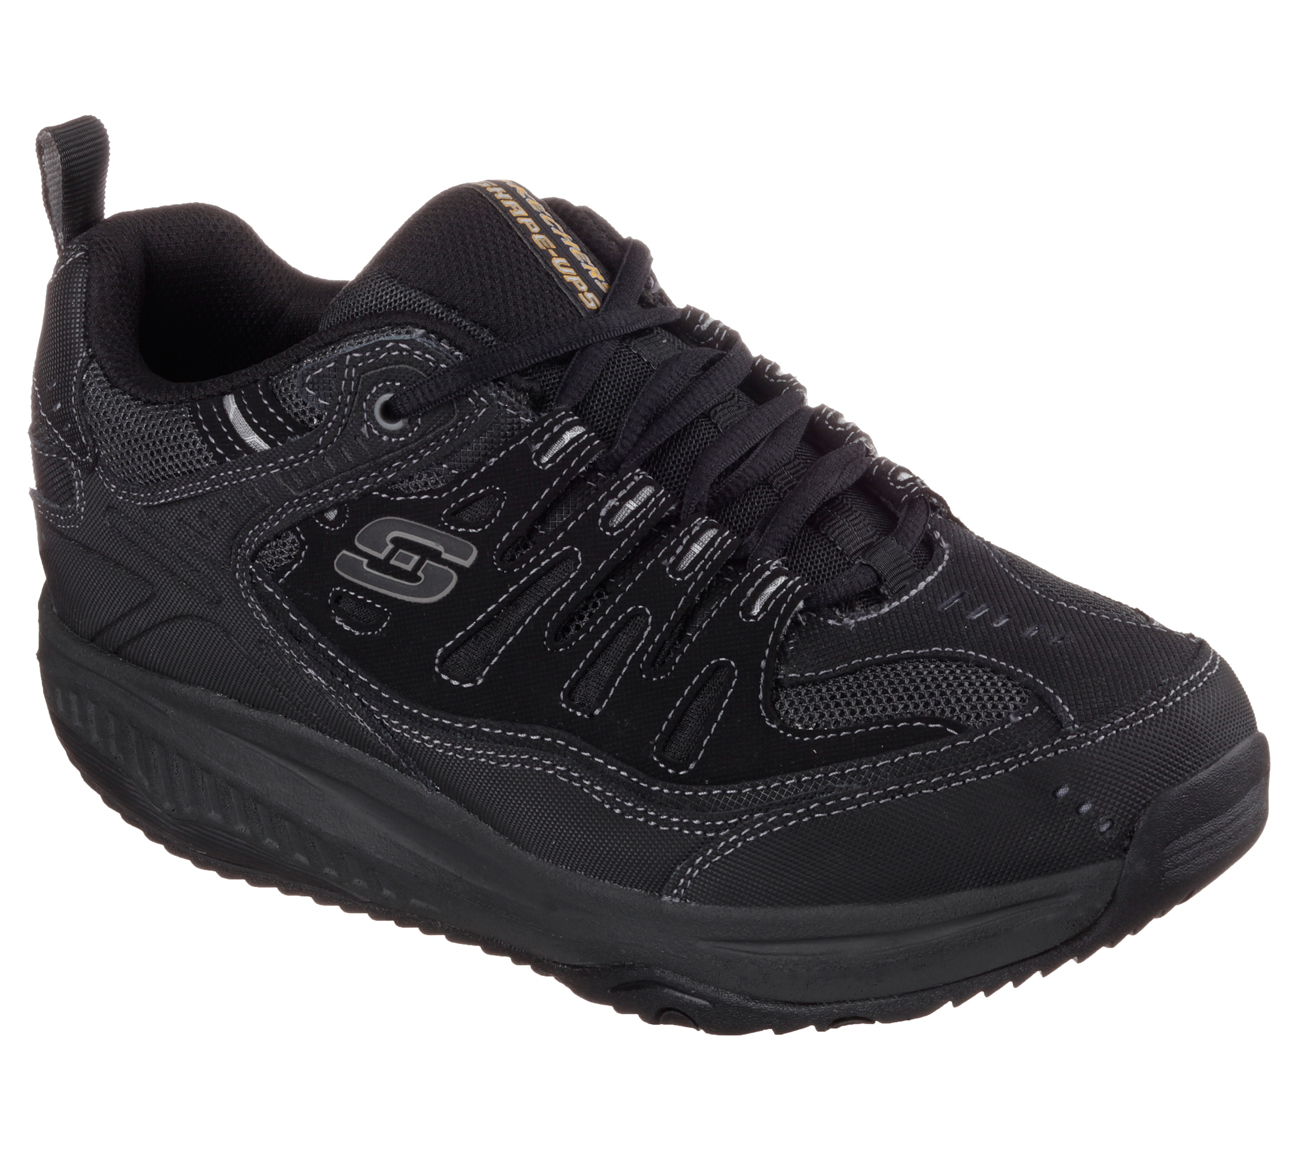 buy skechers shape ups 2 0 xt comfort walker shape ups. Black Bedroom Furniture Sets. Home Design Ideas